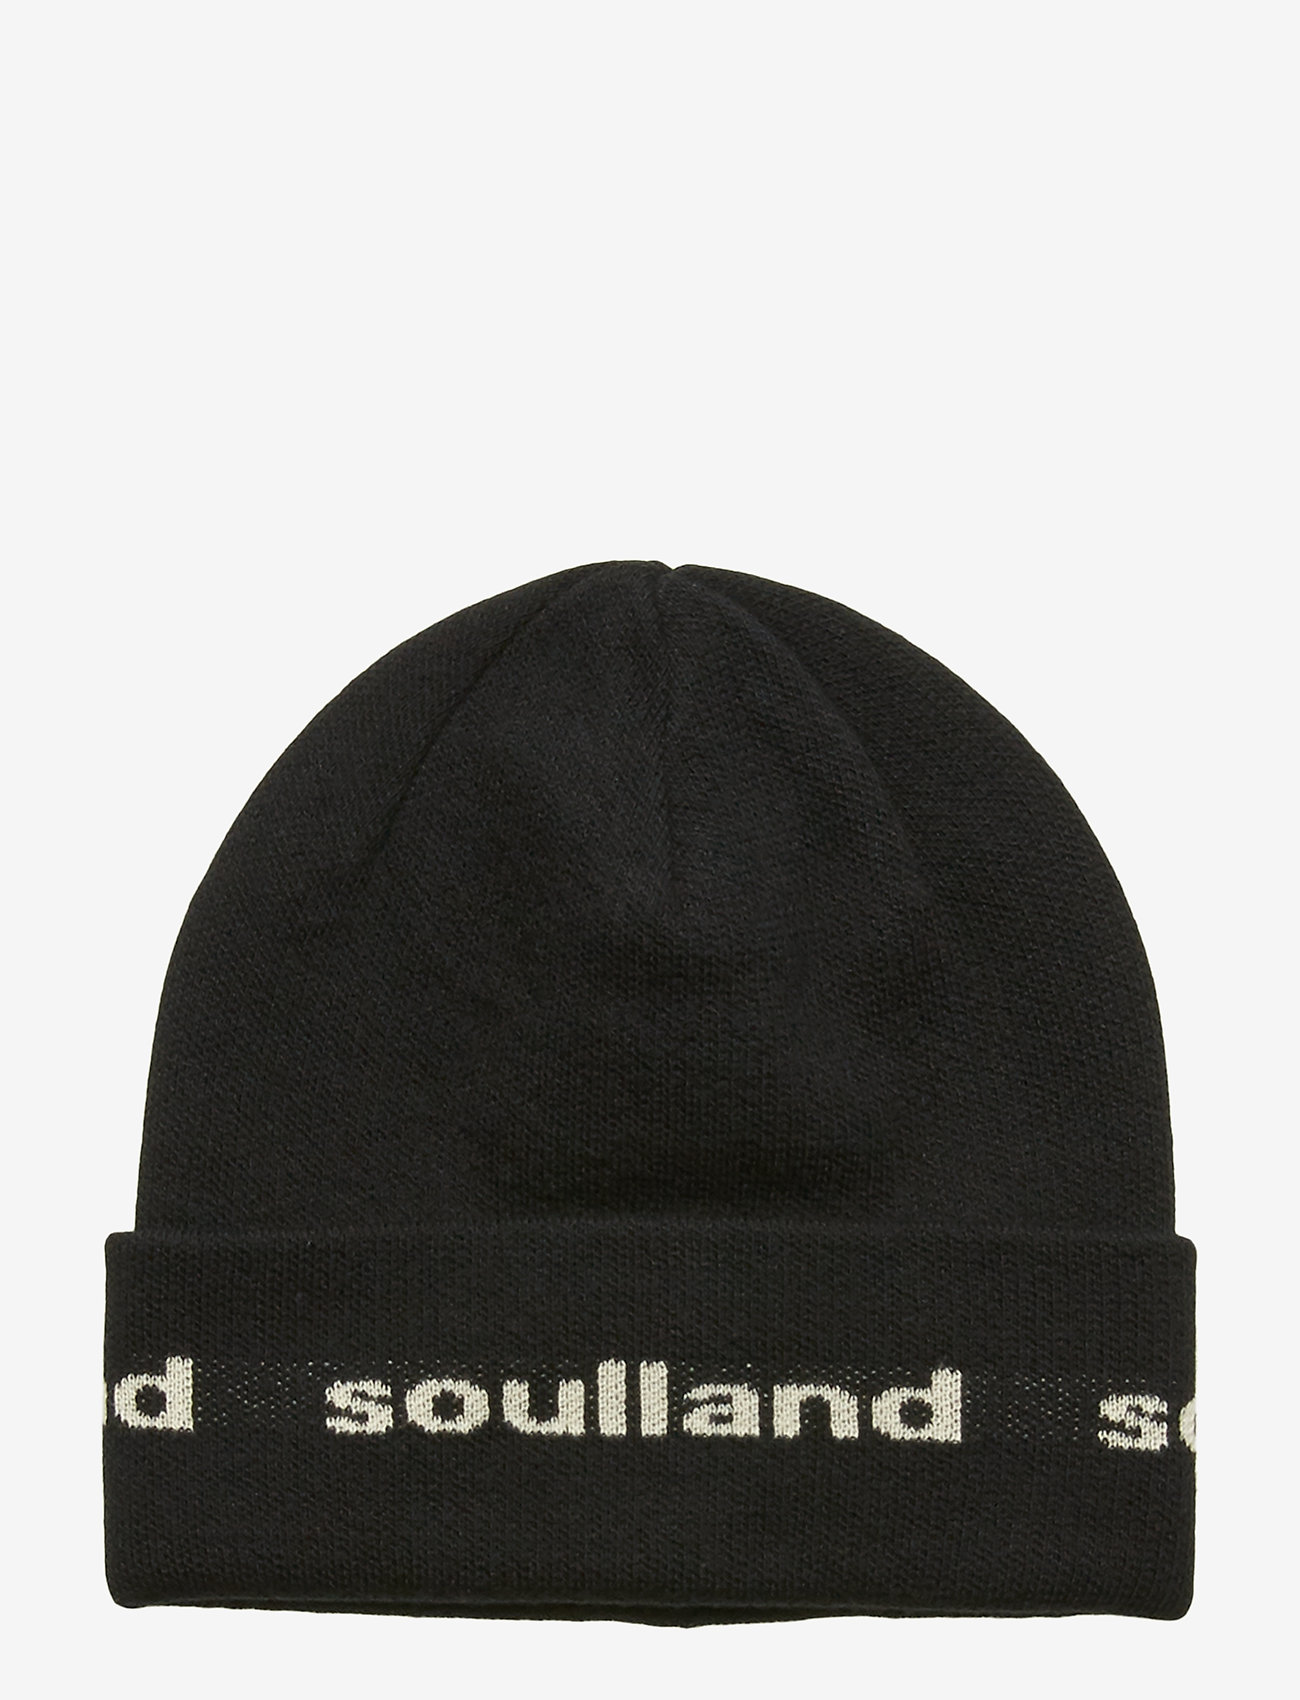 Soulland - YOUNGBANG RECYCLE BEANIE - pipot - black - 0